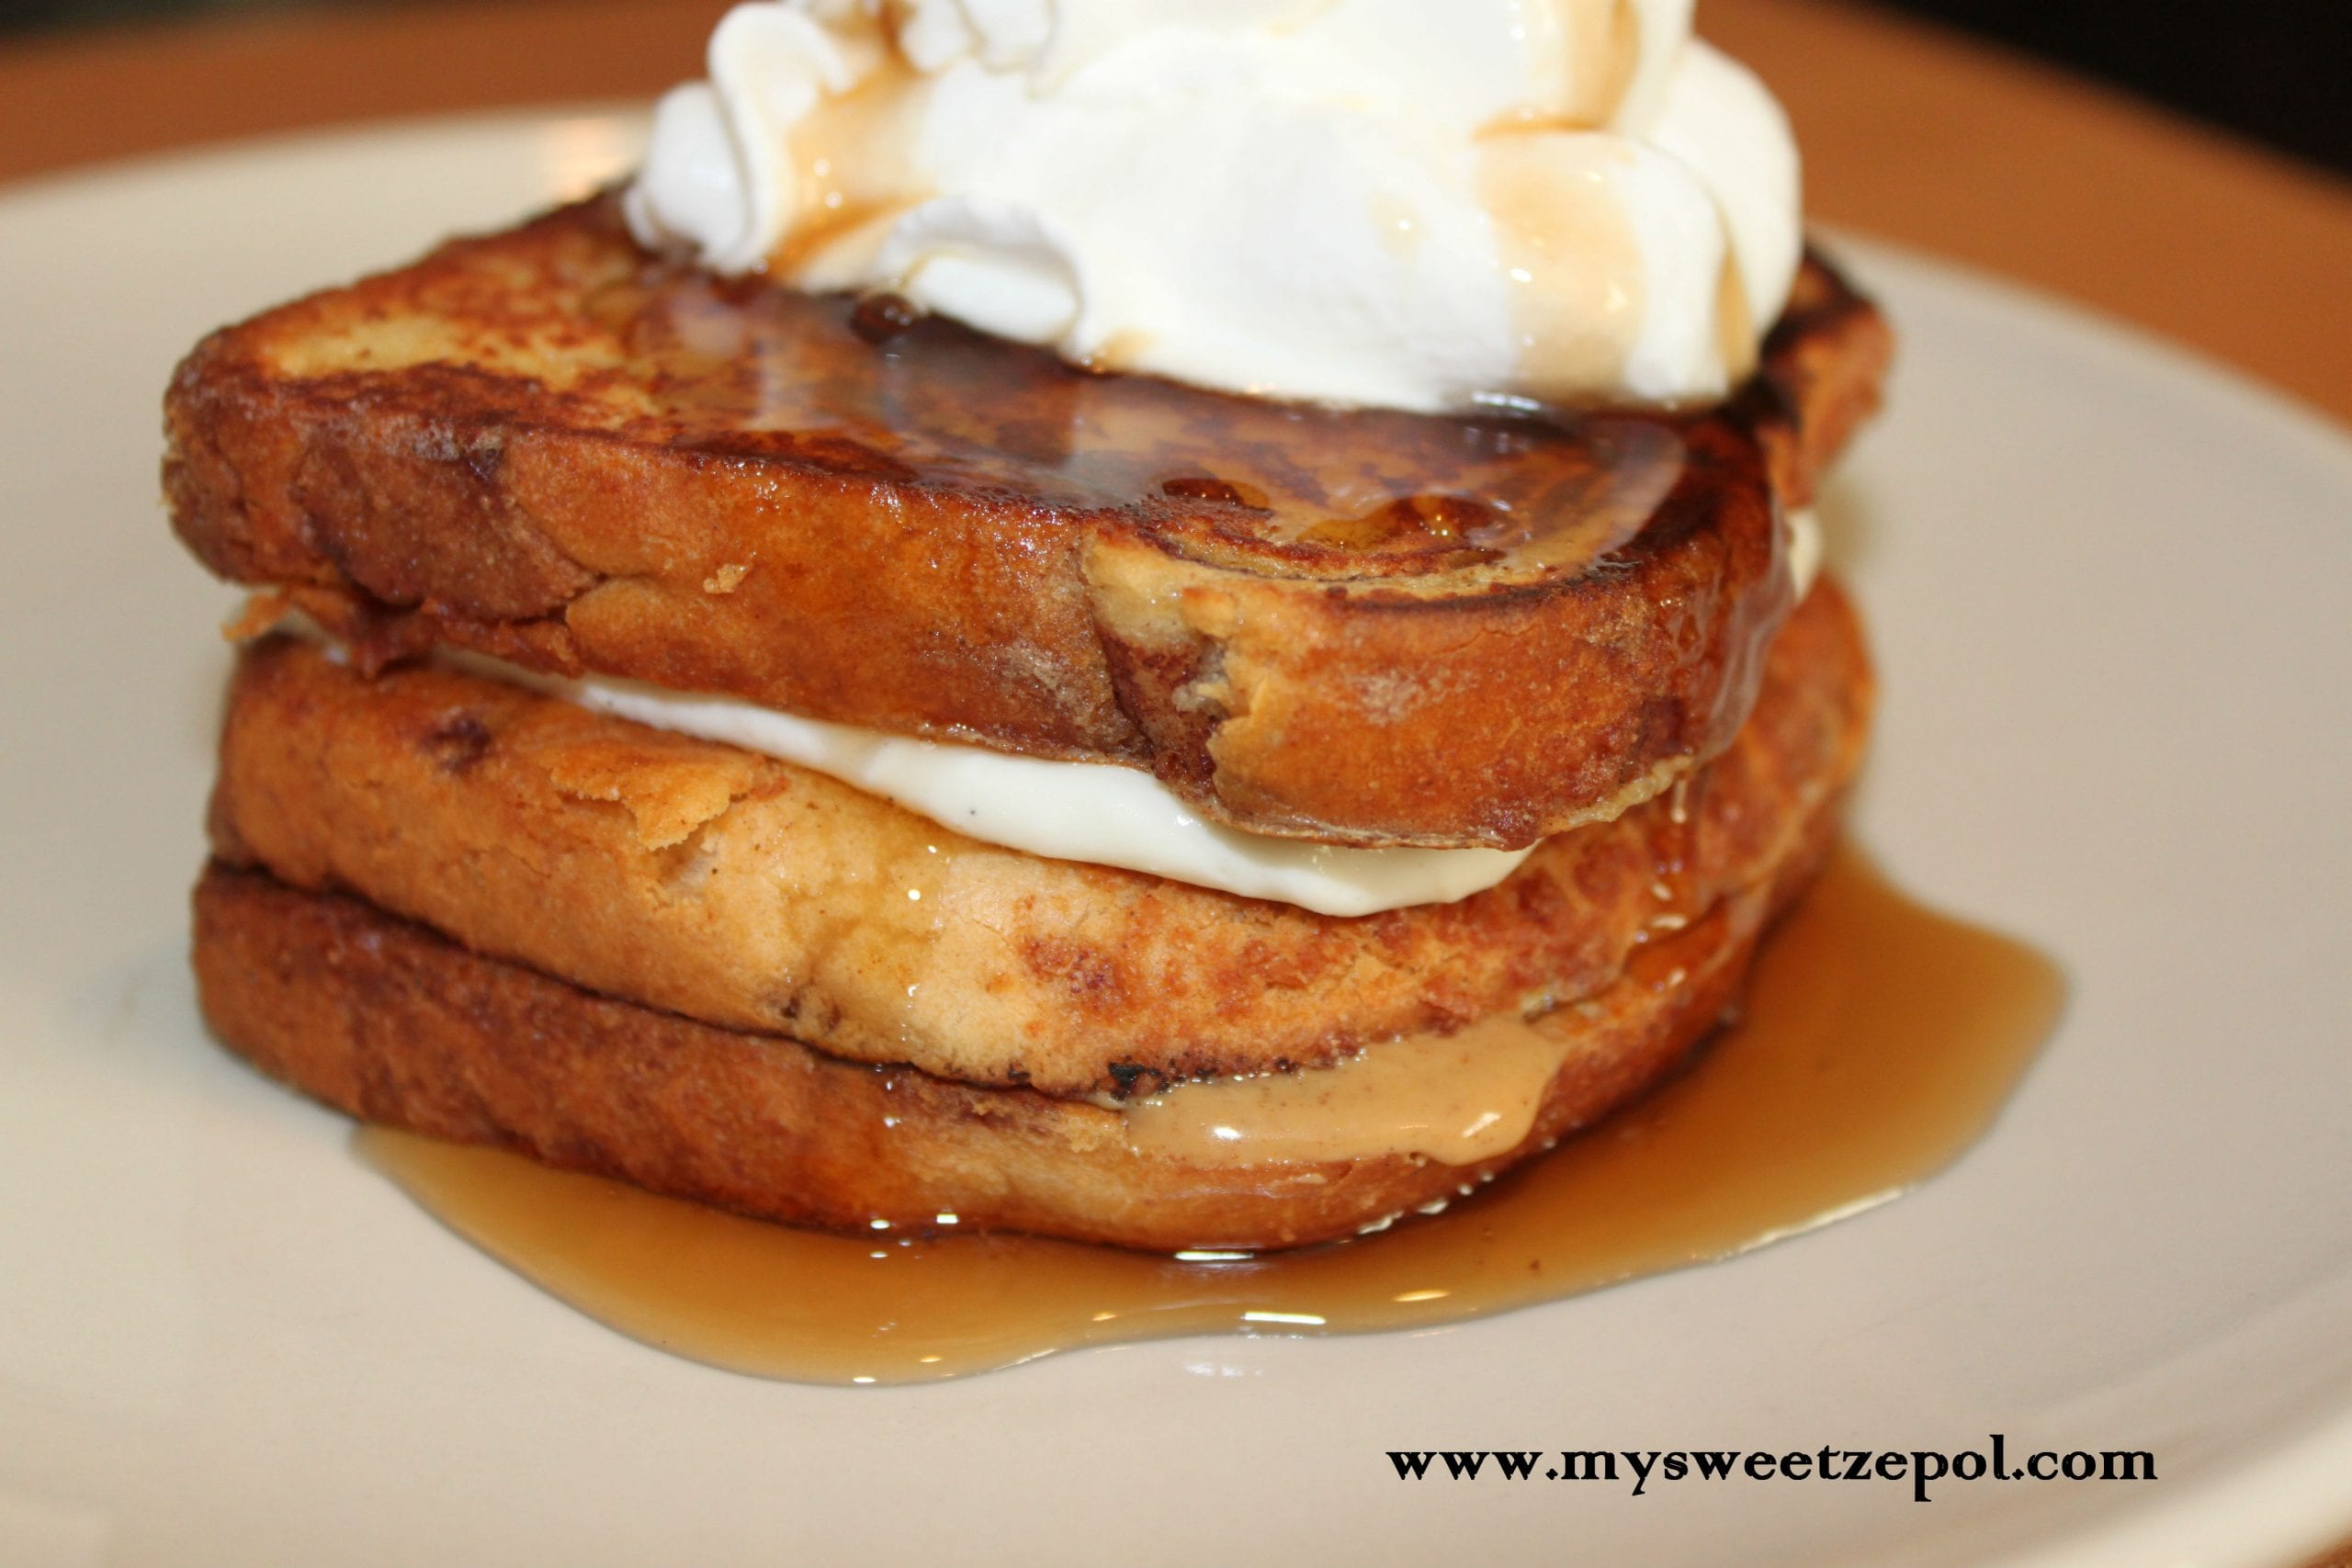 french peanut butter and banana photo stuffed french toast post peanut ...